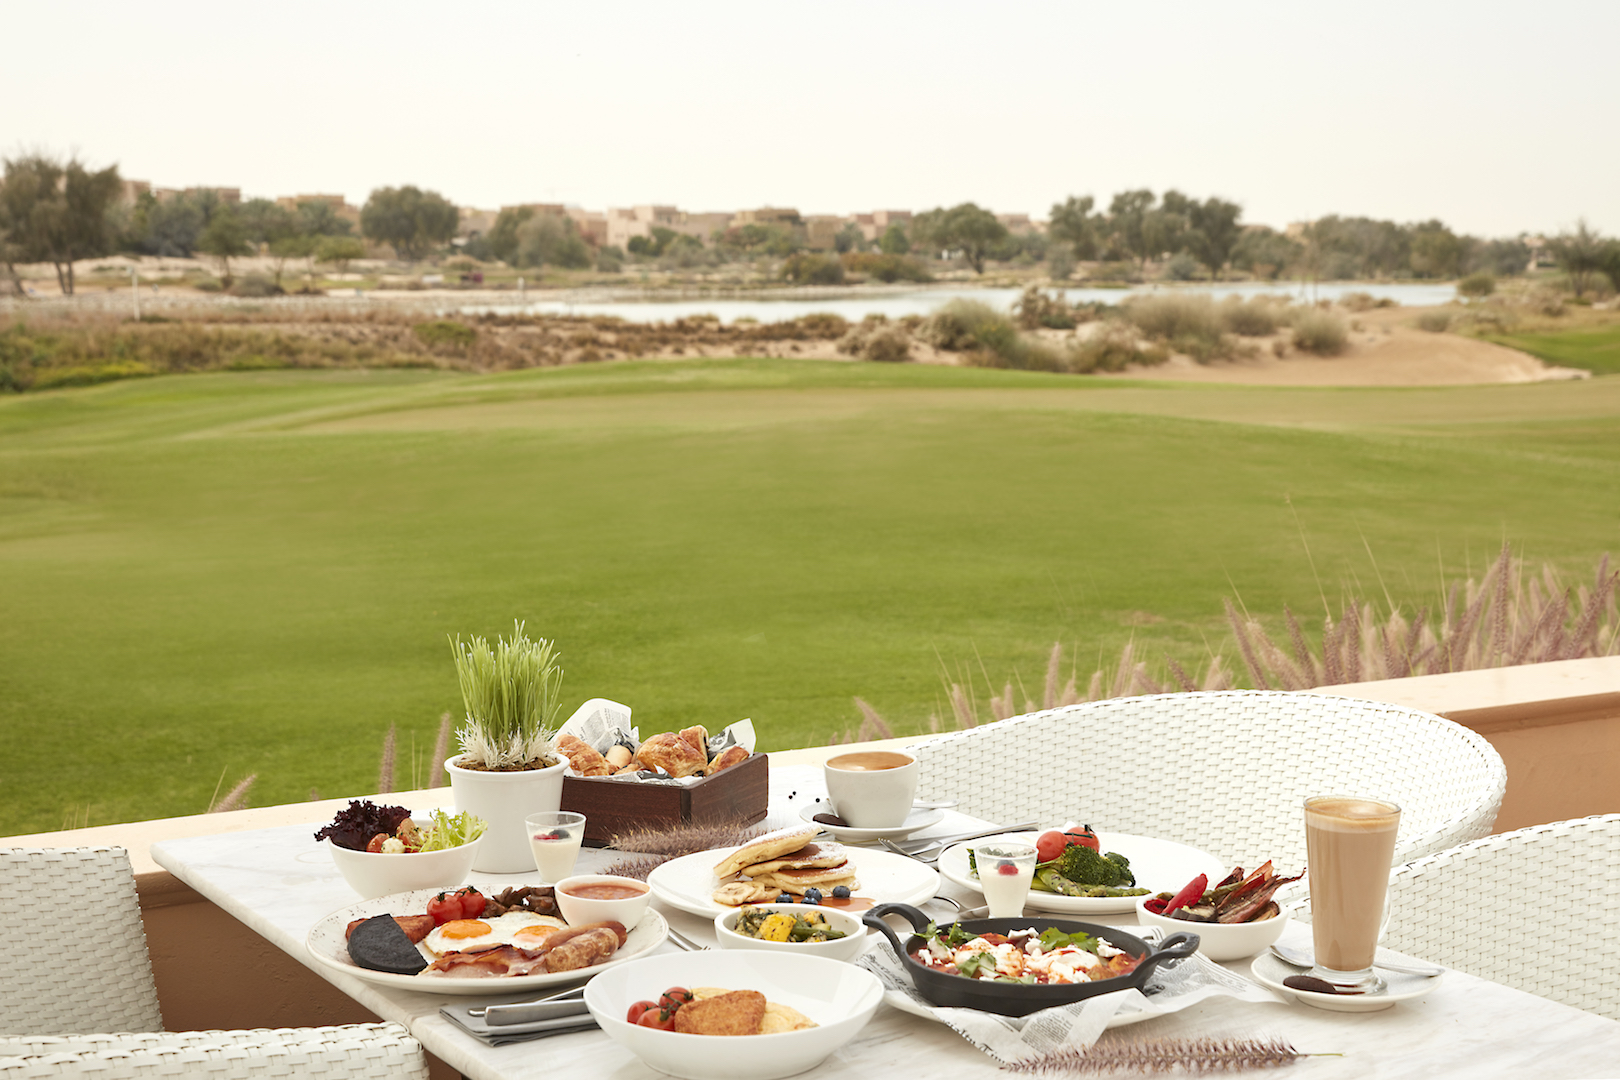 Lazy Dubai Breakfast at Ranches Restaurant